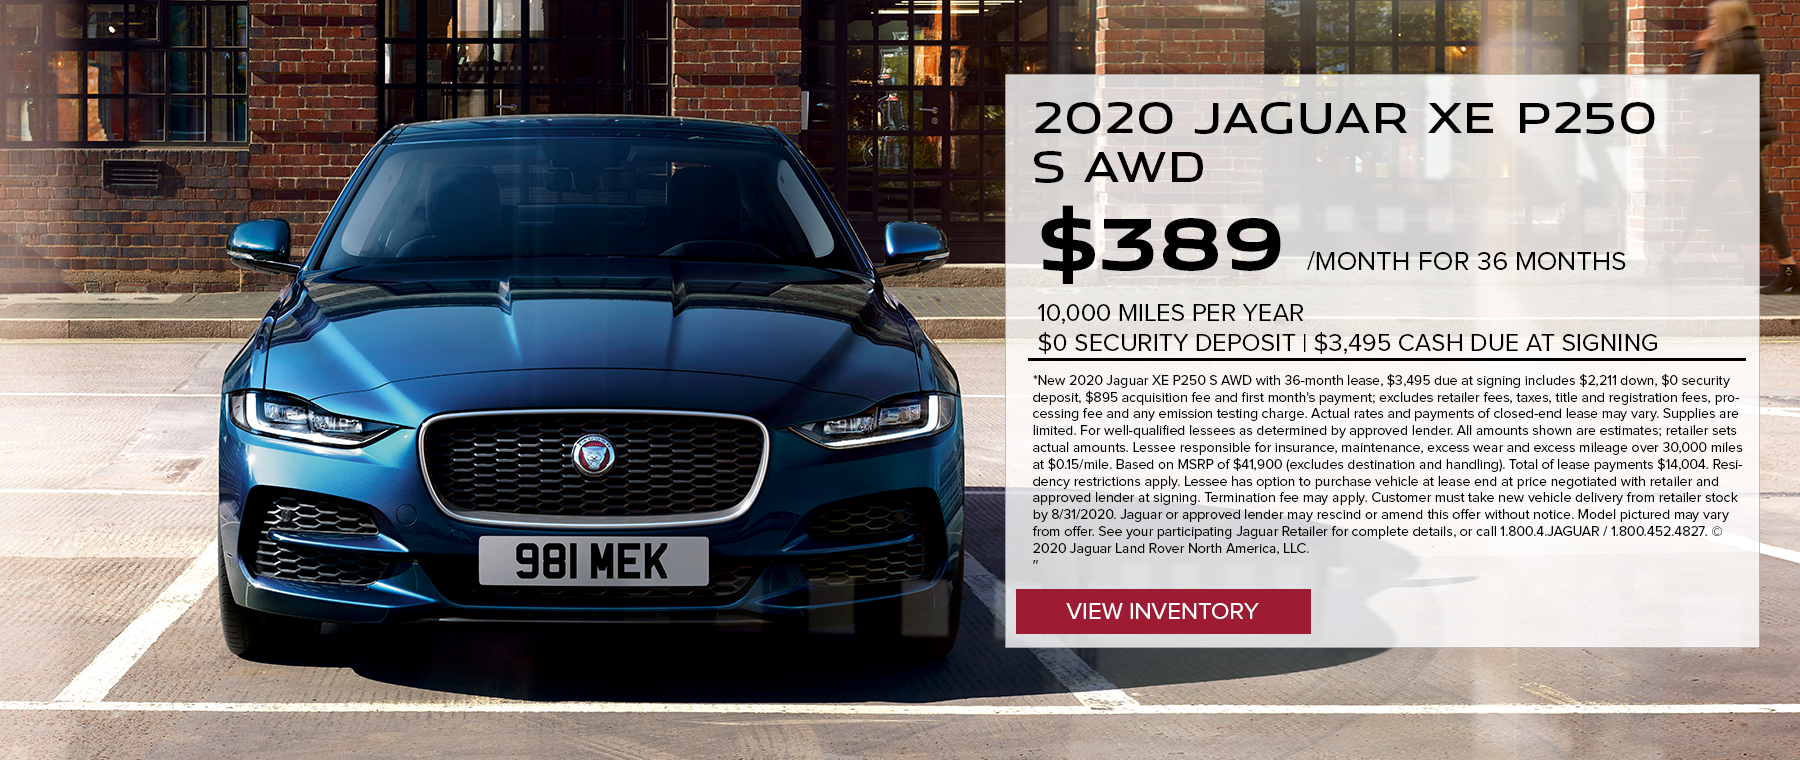 2020 JAGUAR XE P250 S AWD. $389 PER MONTH. 36 MONTH LEASE TERM. $3,495 CASH DUE AT SIGNING. $0 SECURITY DEPOSIT. 10,000 MILES PER YEAR. EXCLUDES RETAILER FEES, TAXES, TITLE AND REGISTRATION FEES, PROCESSING FEE AND ANY EMISSION TESTING CHARGE. OFFER ENDS 8/31/2020.